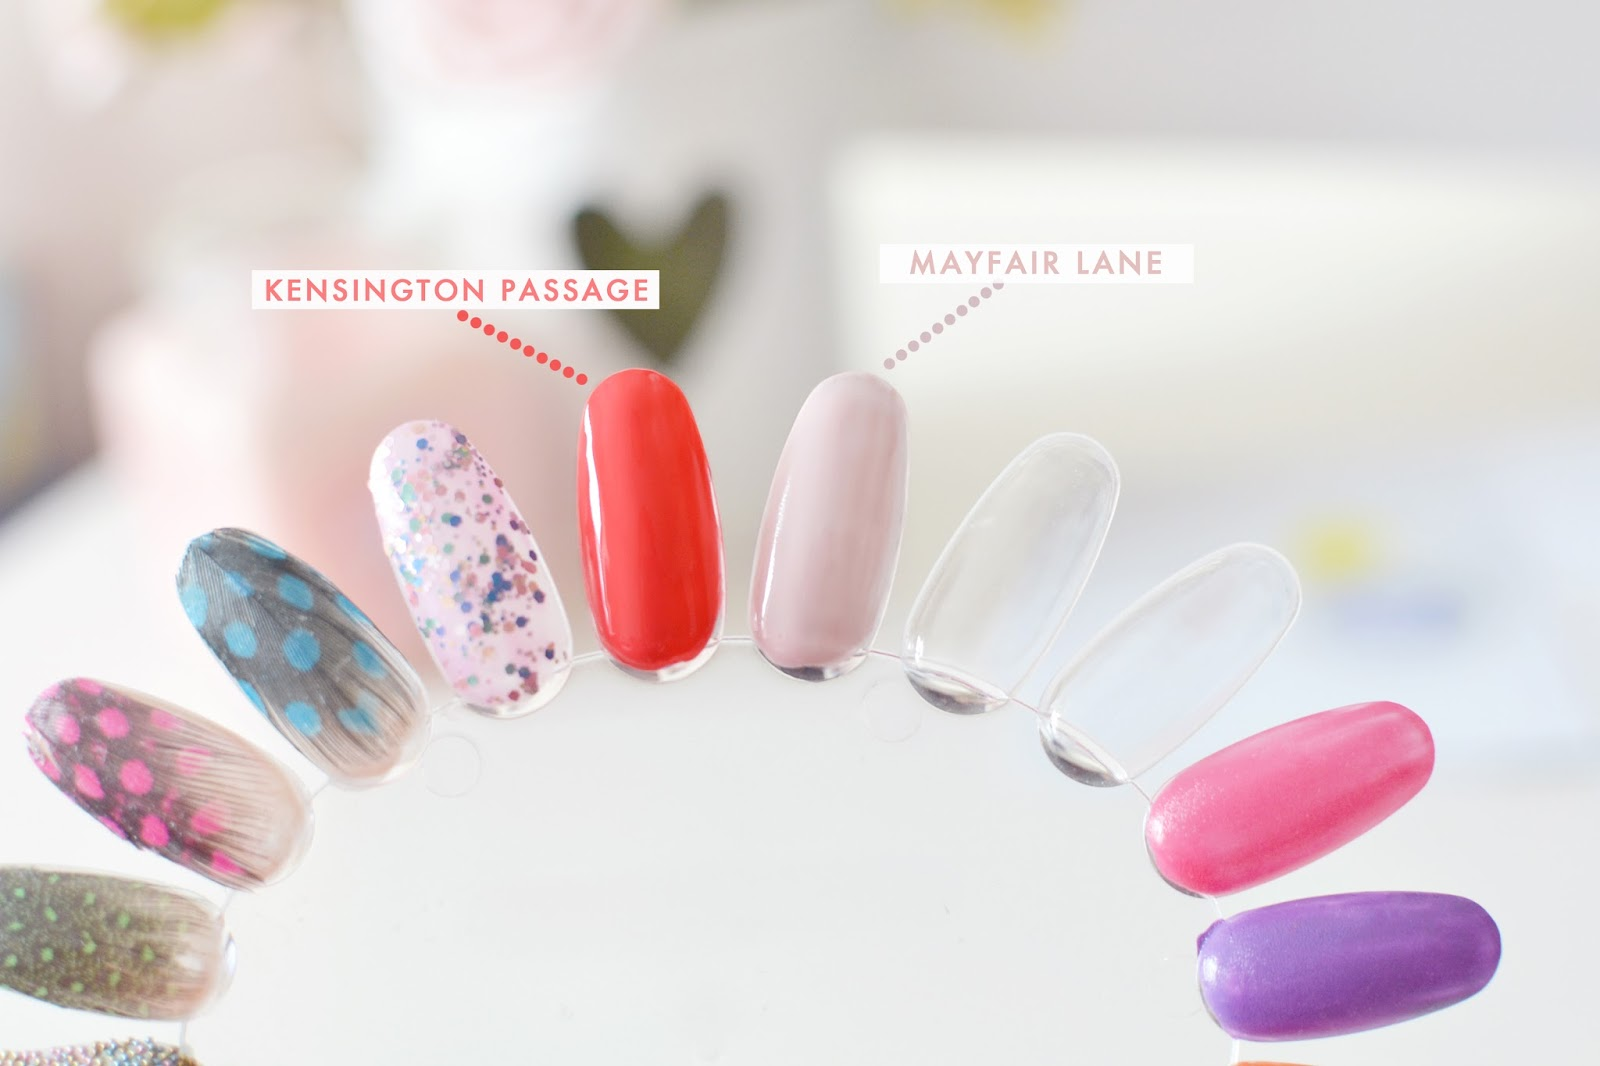 nails inc mayfair lane swatch, kensington passage swatch